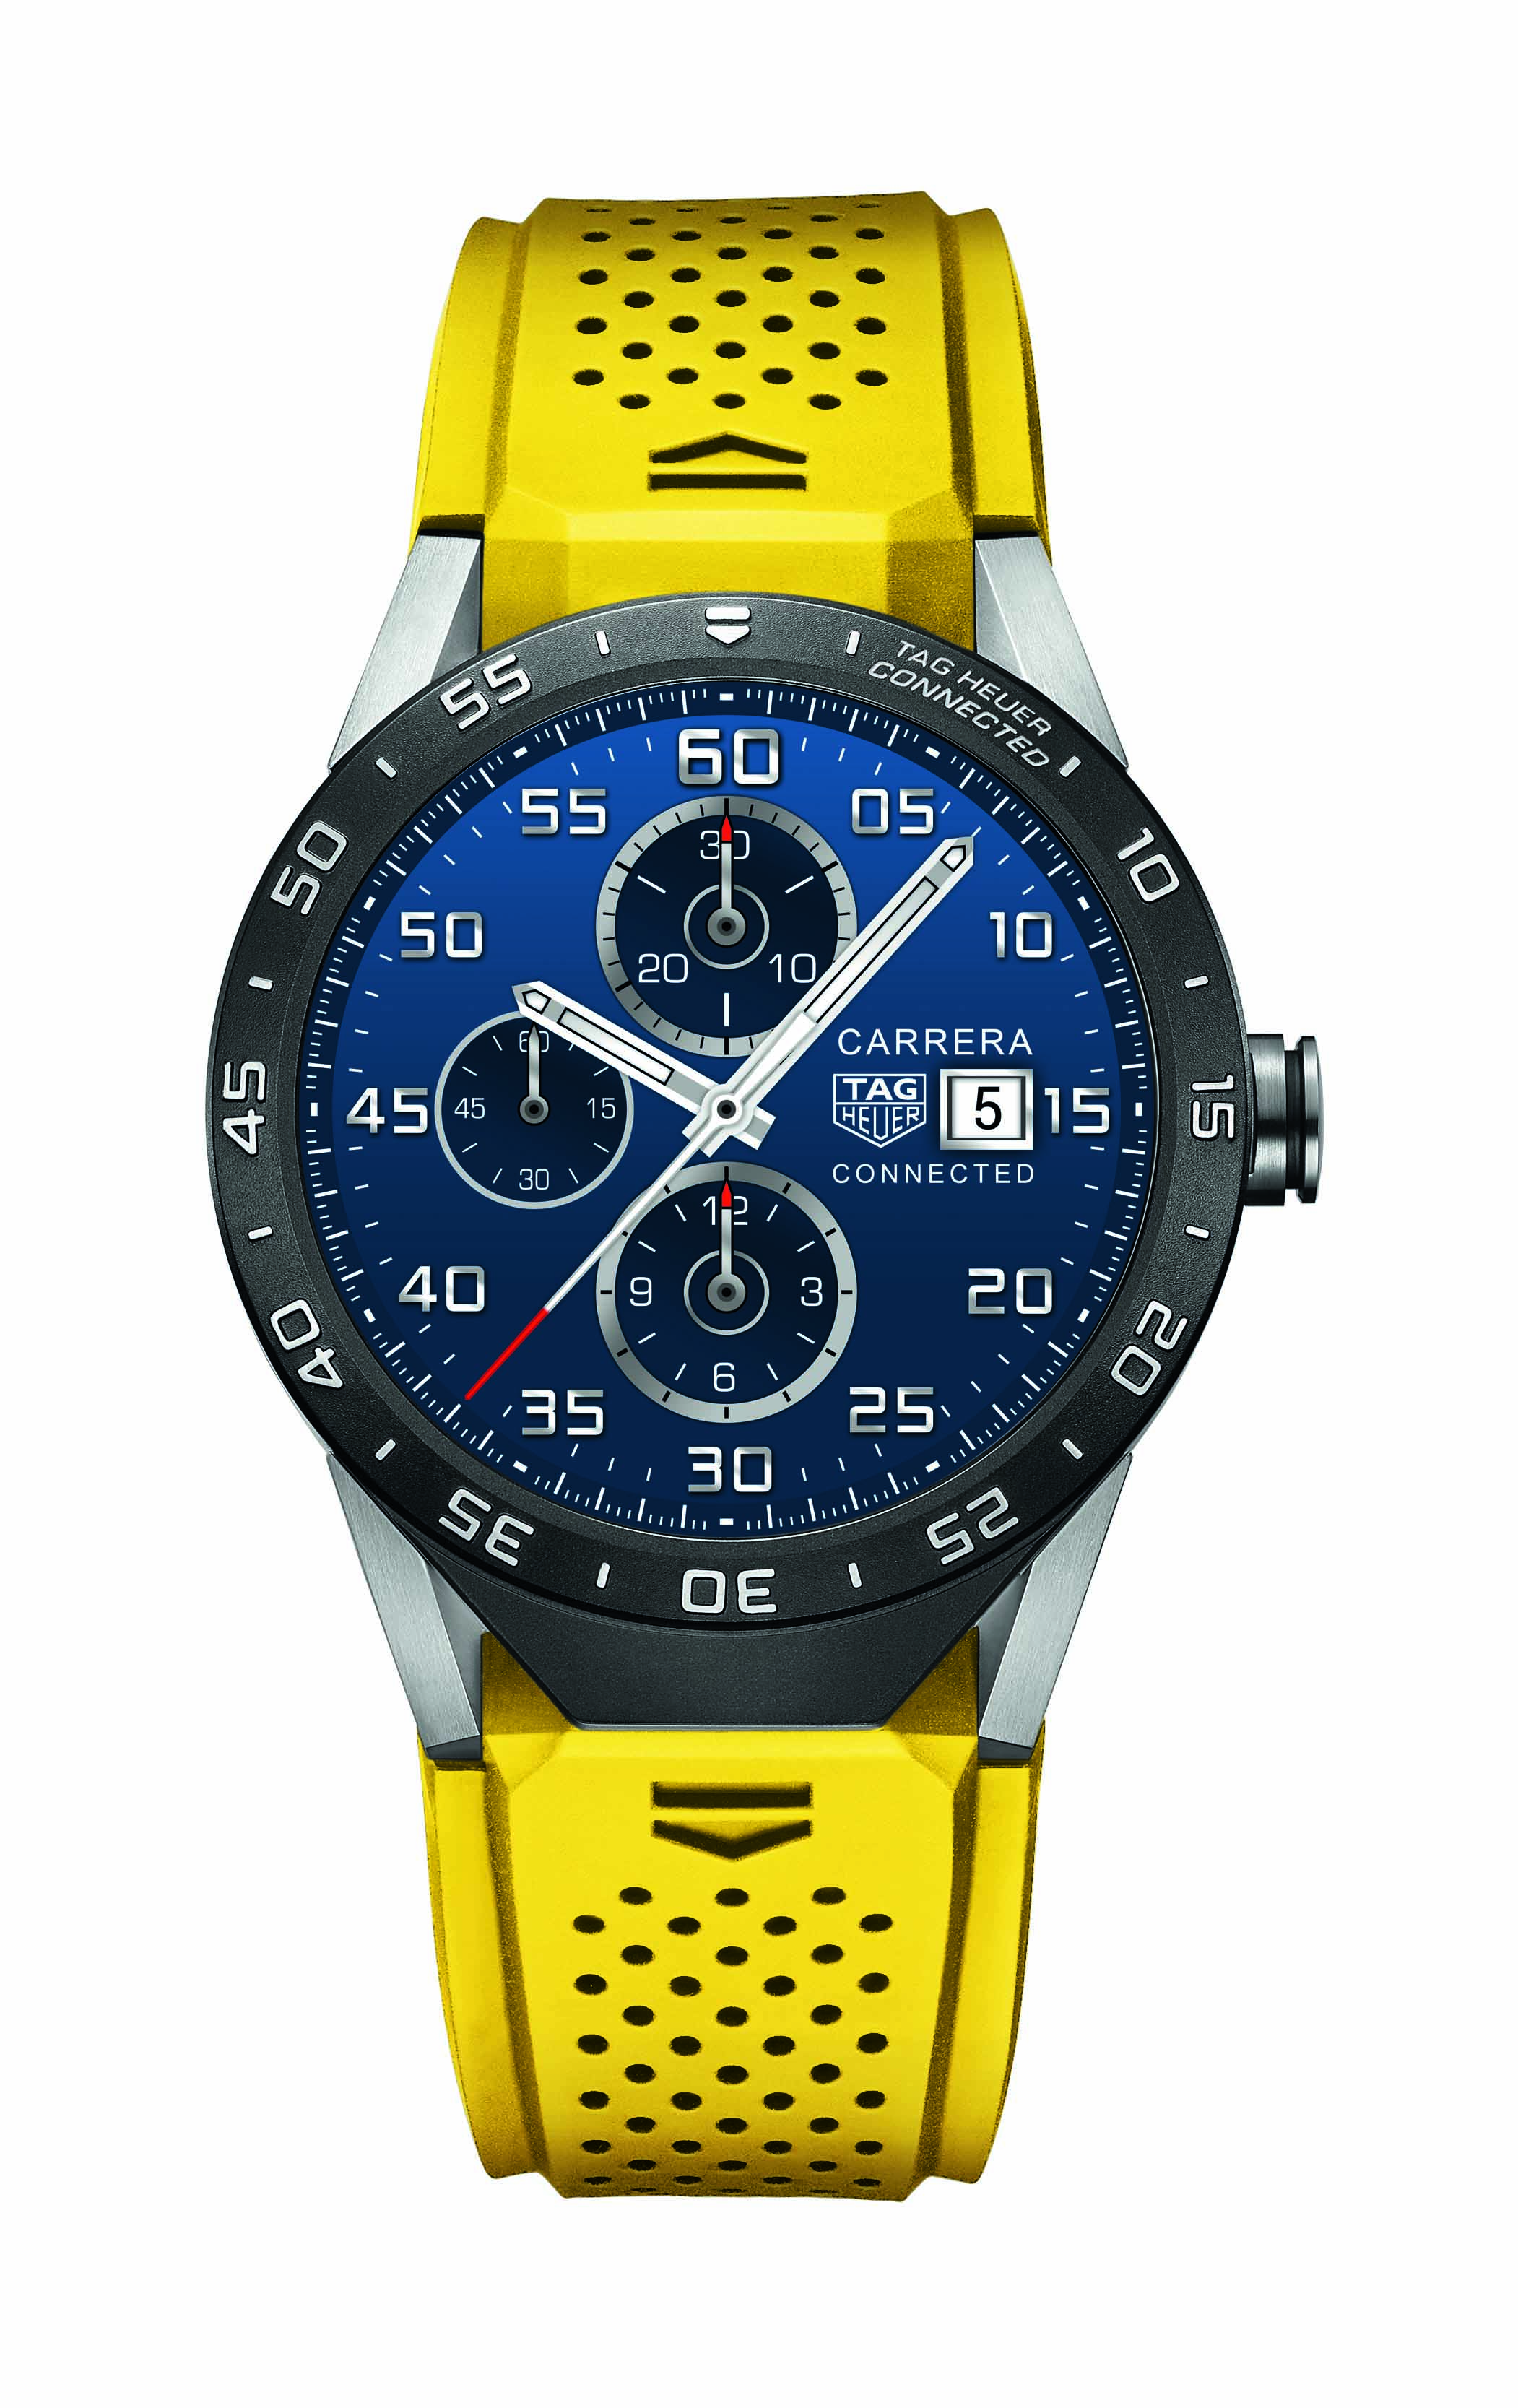 SAR8A80.FT6060 - YELLOW - DIAL ON 2015